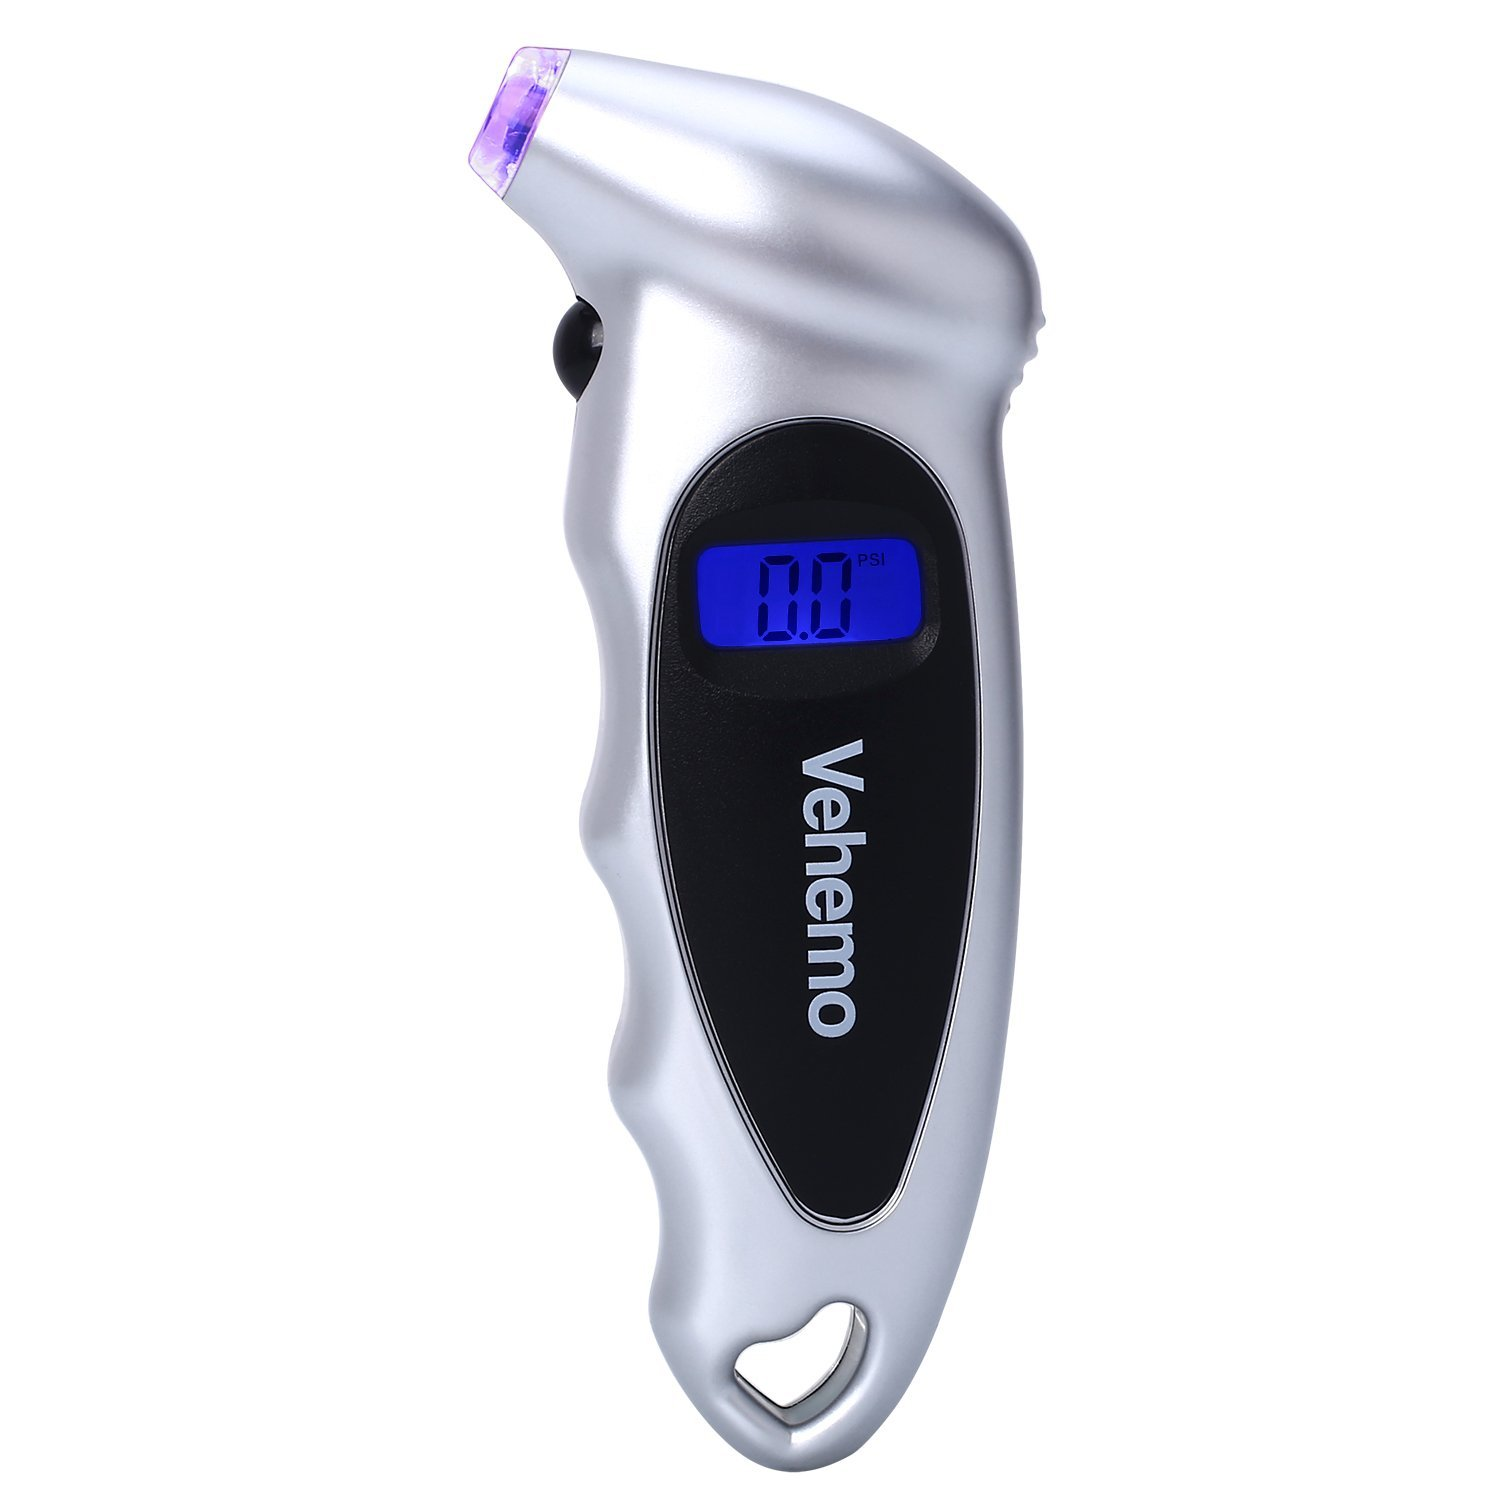 Vehemo Digital Tire Pressure Gauge TG-A01 100 PSI, Bright LED Light, 4 Settings PSI Bar KPA Kgf/cm, Quickly and Accurately Monitor Tire Air Pressure 4333085069